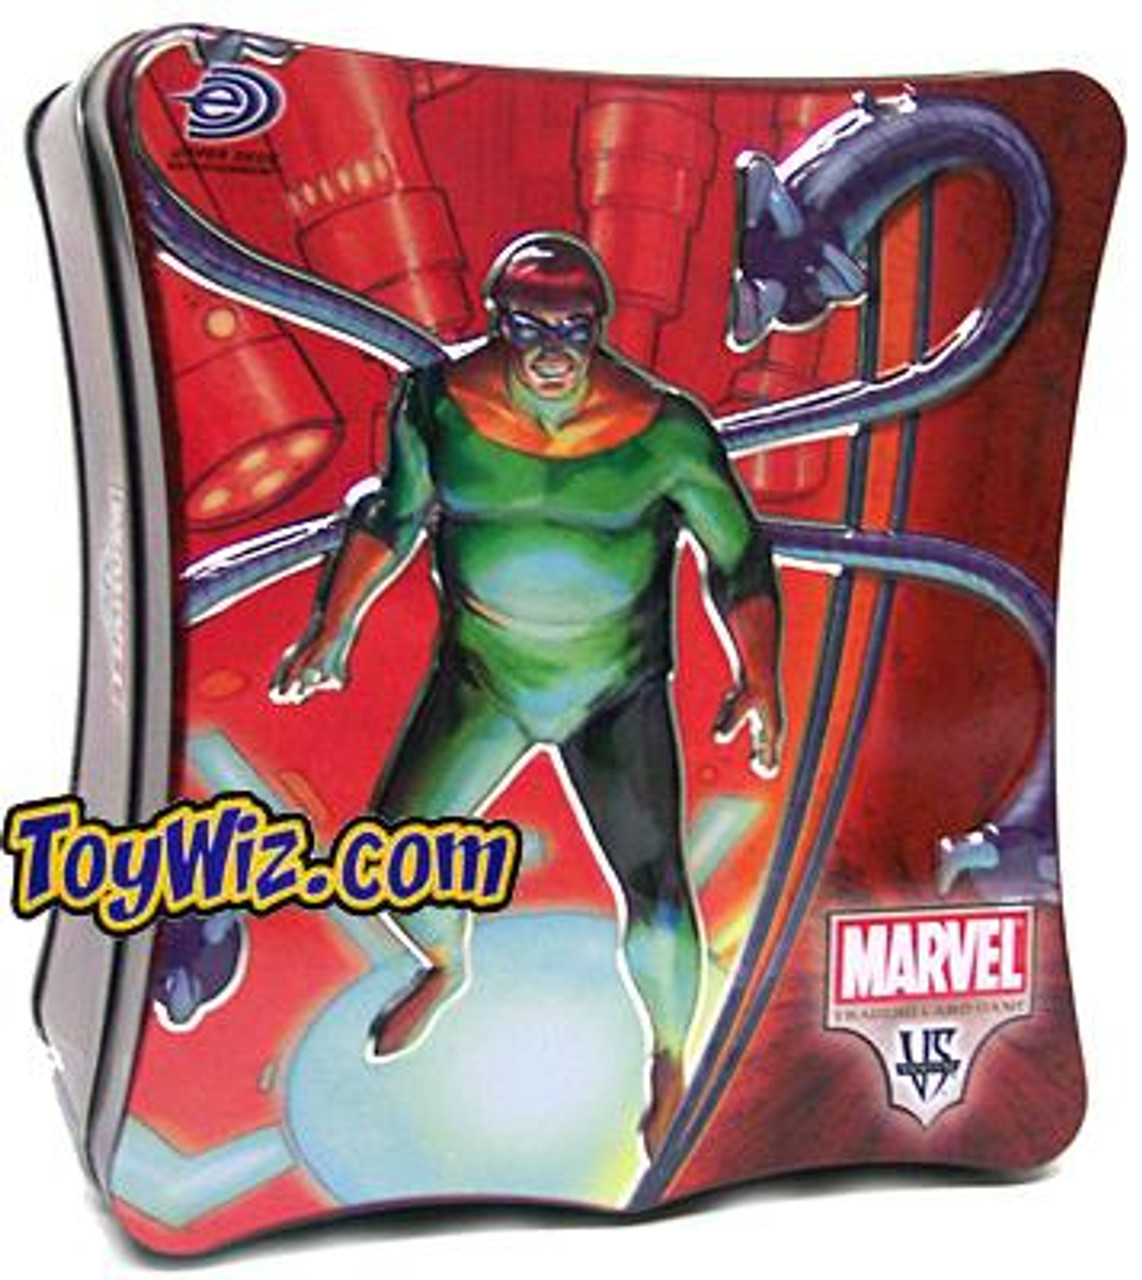 Marvel VS System Trading Card Game Doctor Ock Collectible Tin